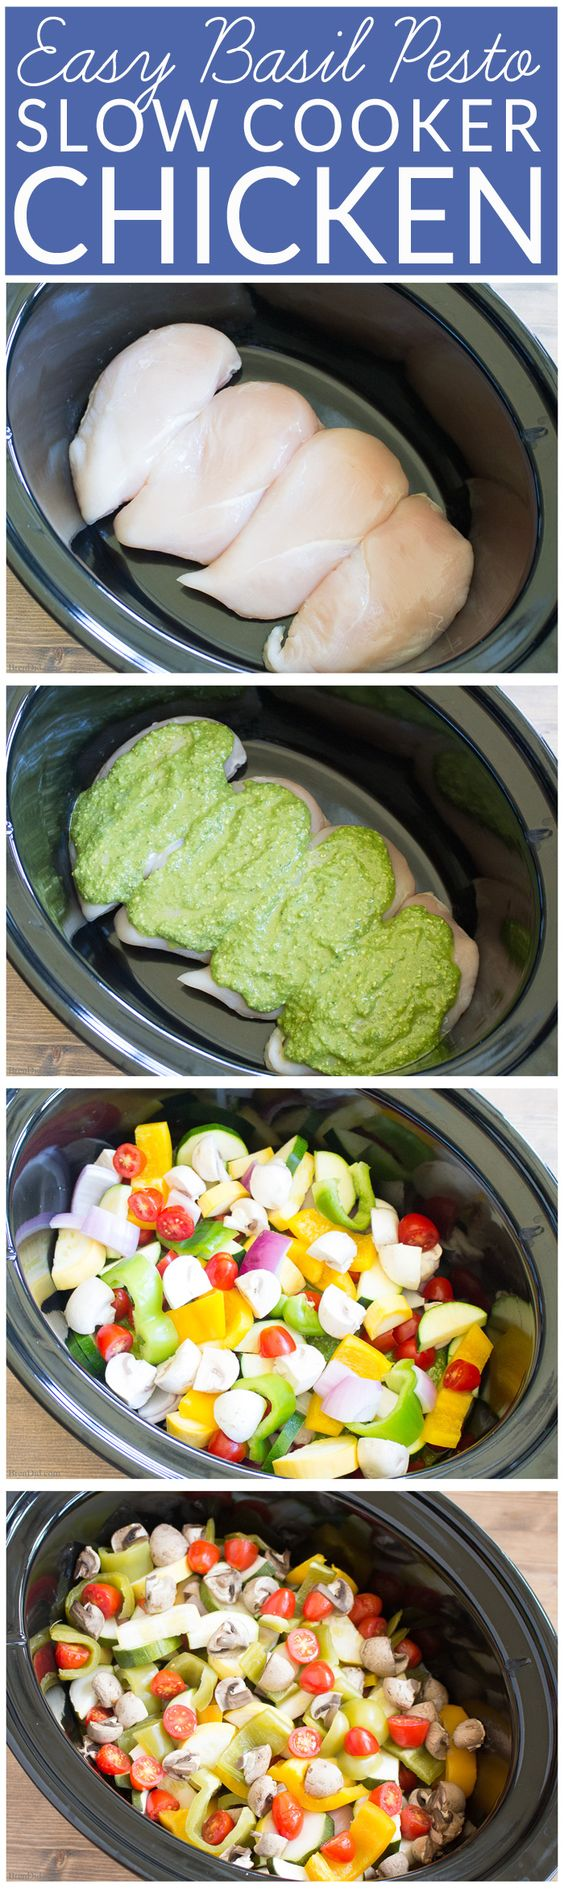 Chicken pesto pasta easy crockpot recipe vegetables for Healthy vegetarian crock pot recipes easy